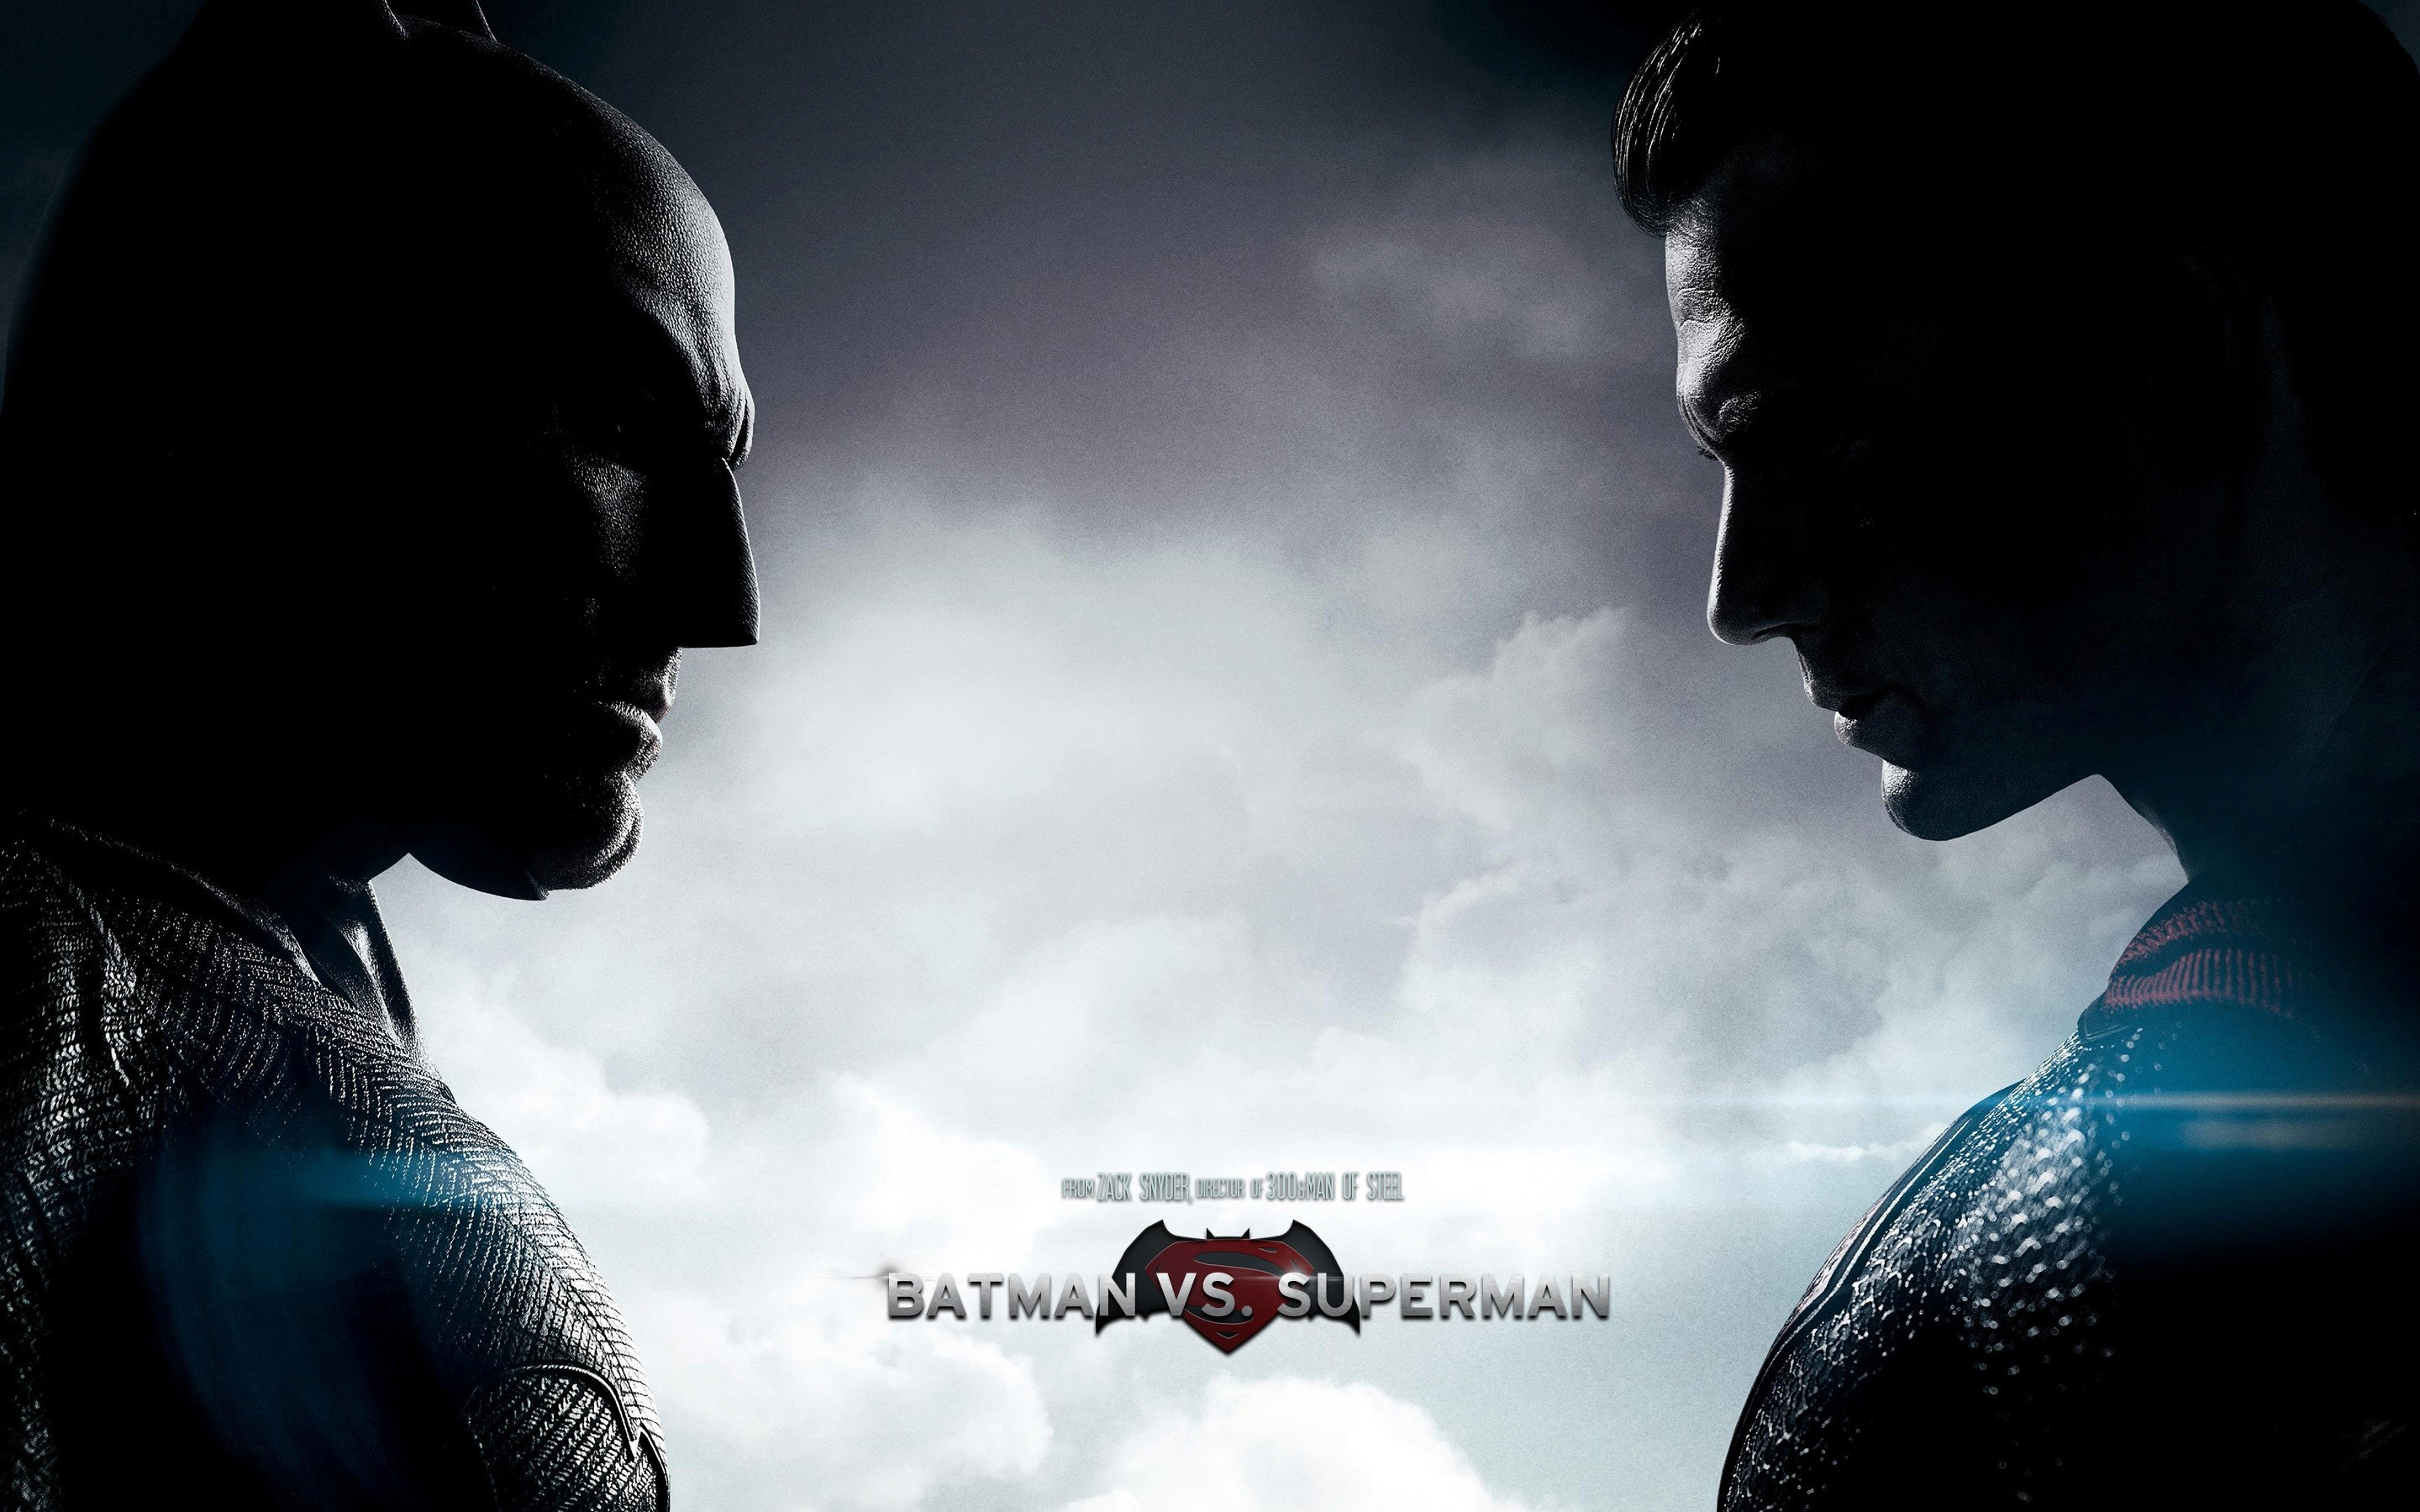 Wallpaper Batman against Superman